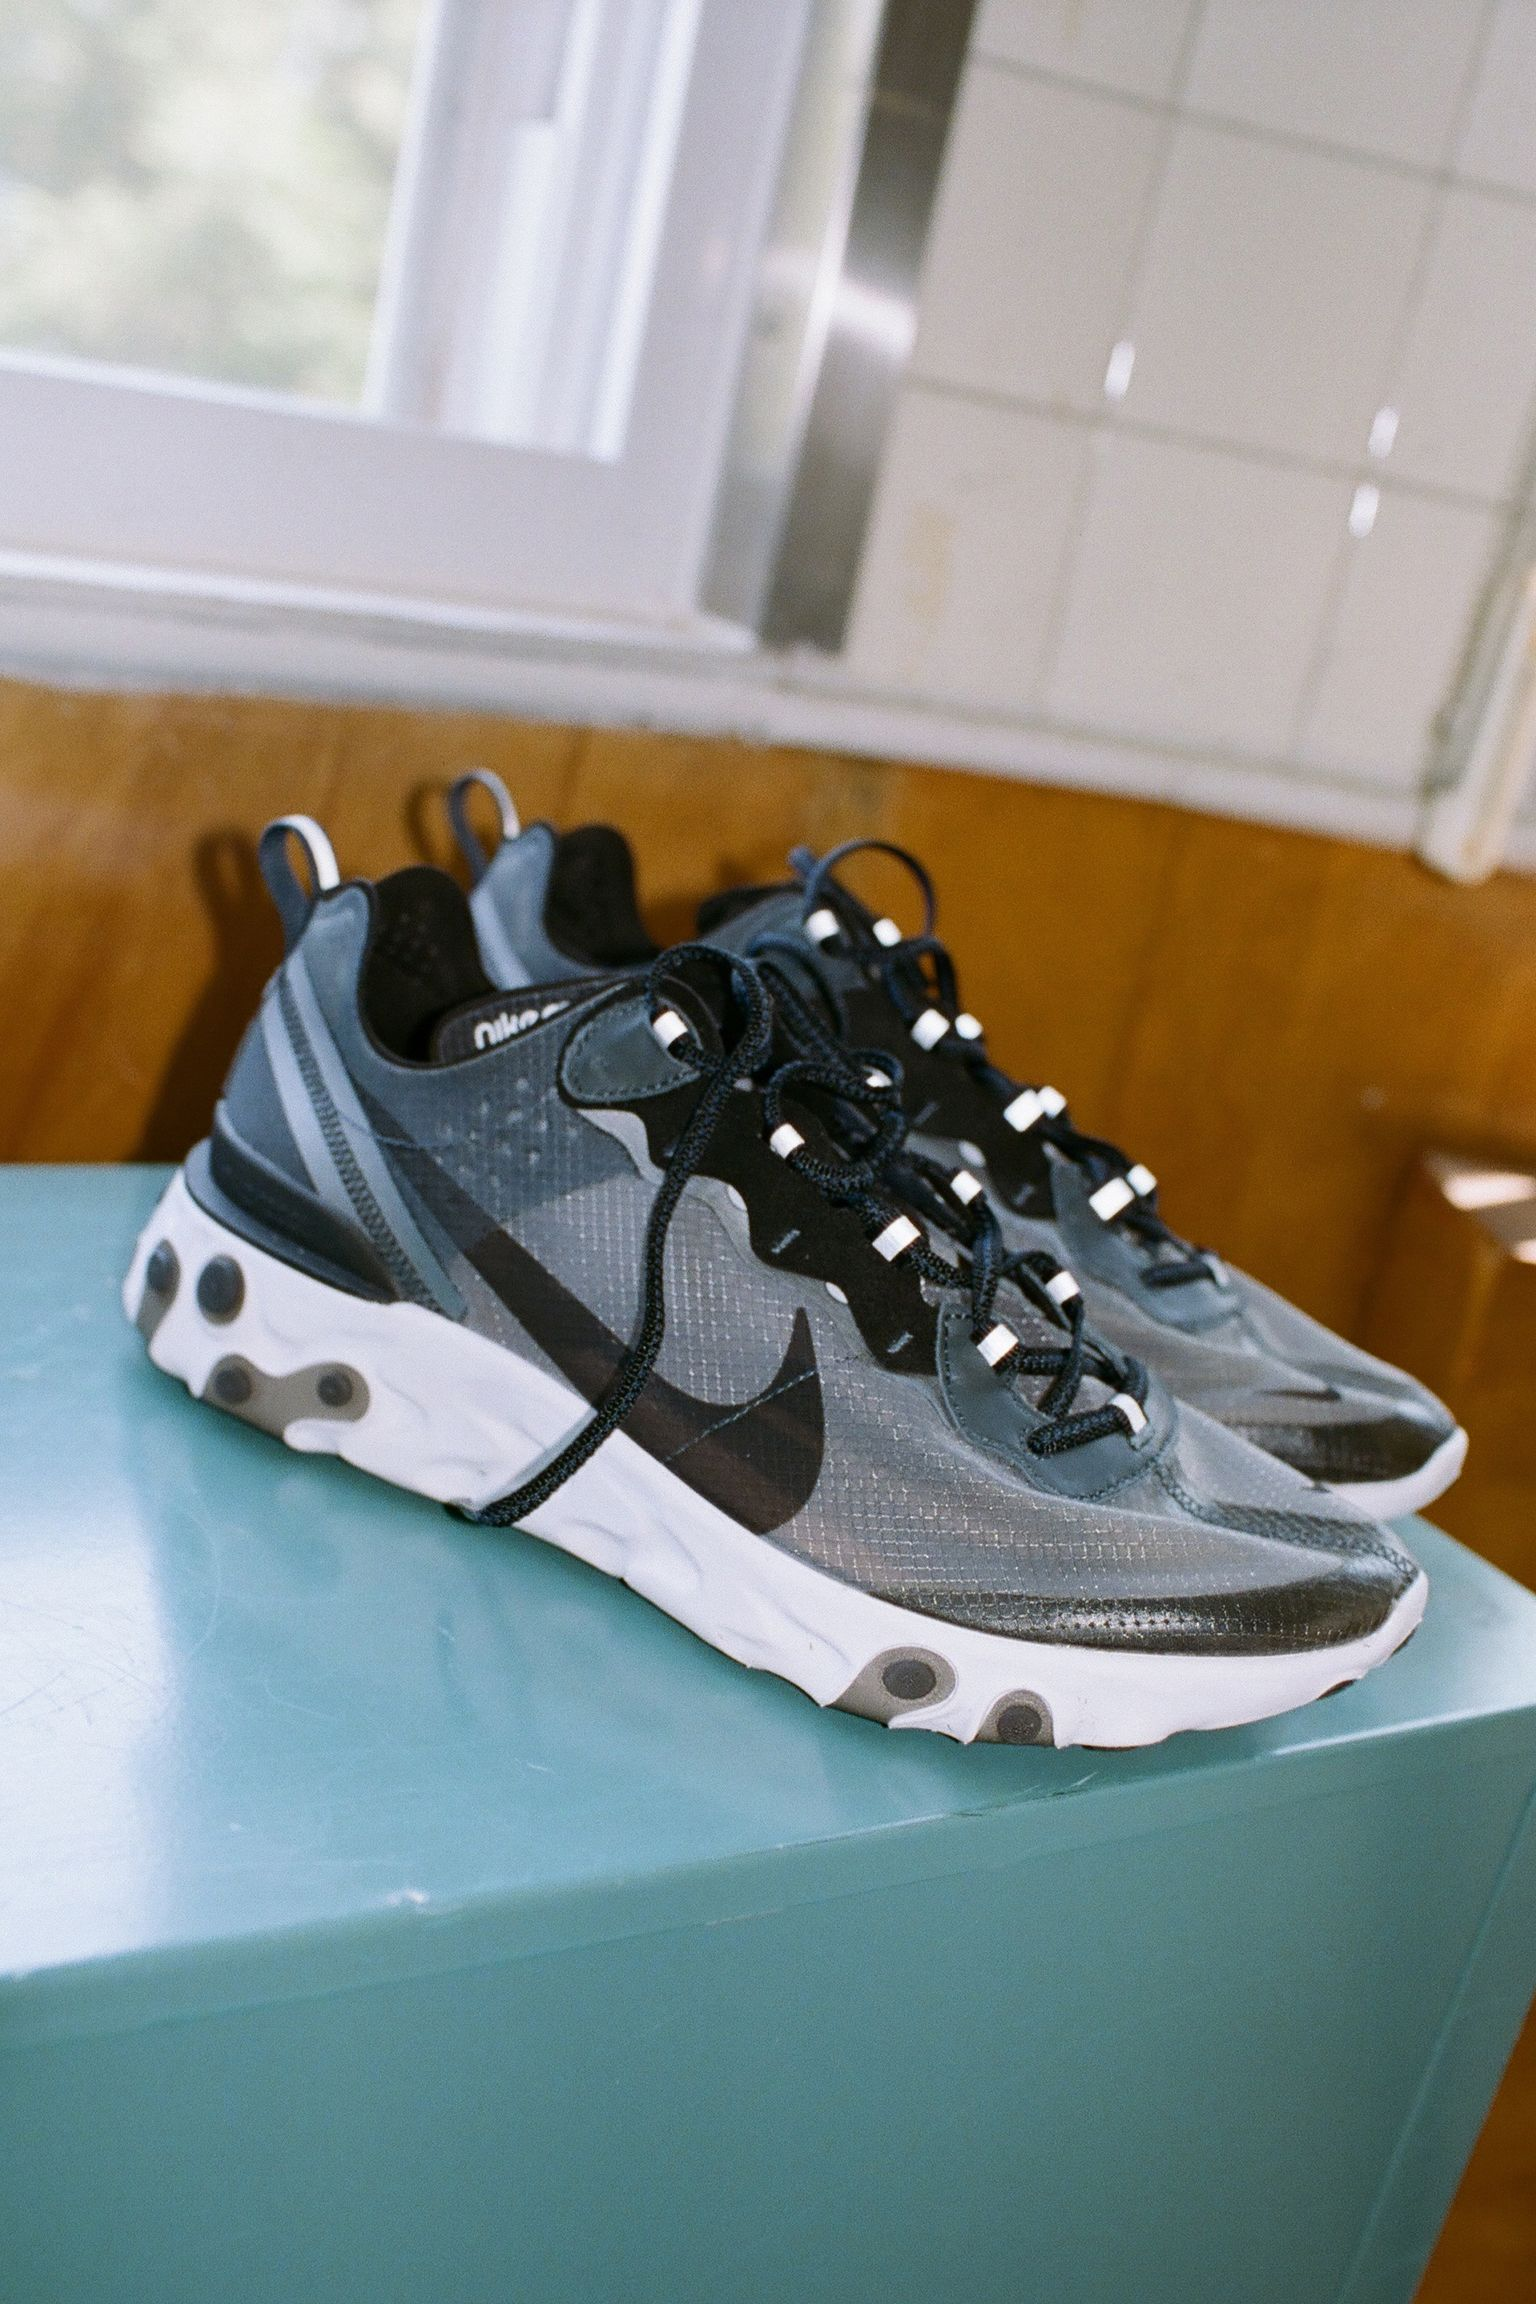 Nike React Element 87 'Anthracite & Black' Release Date